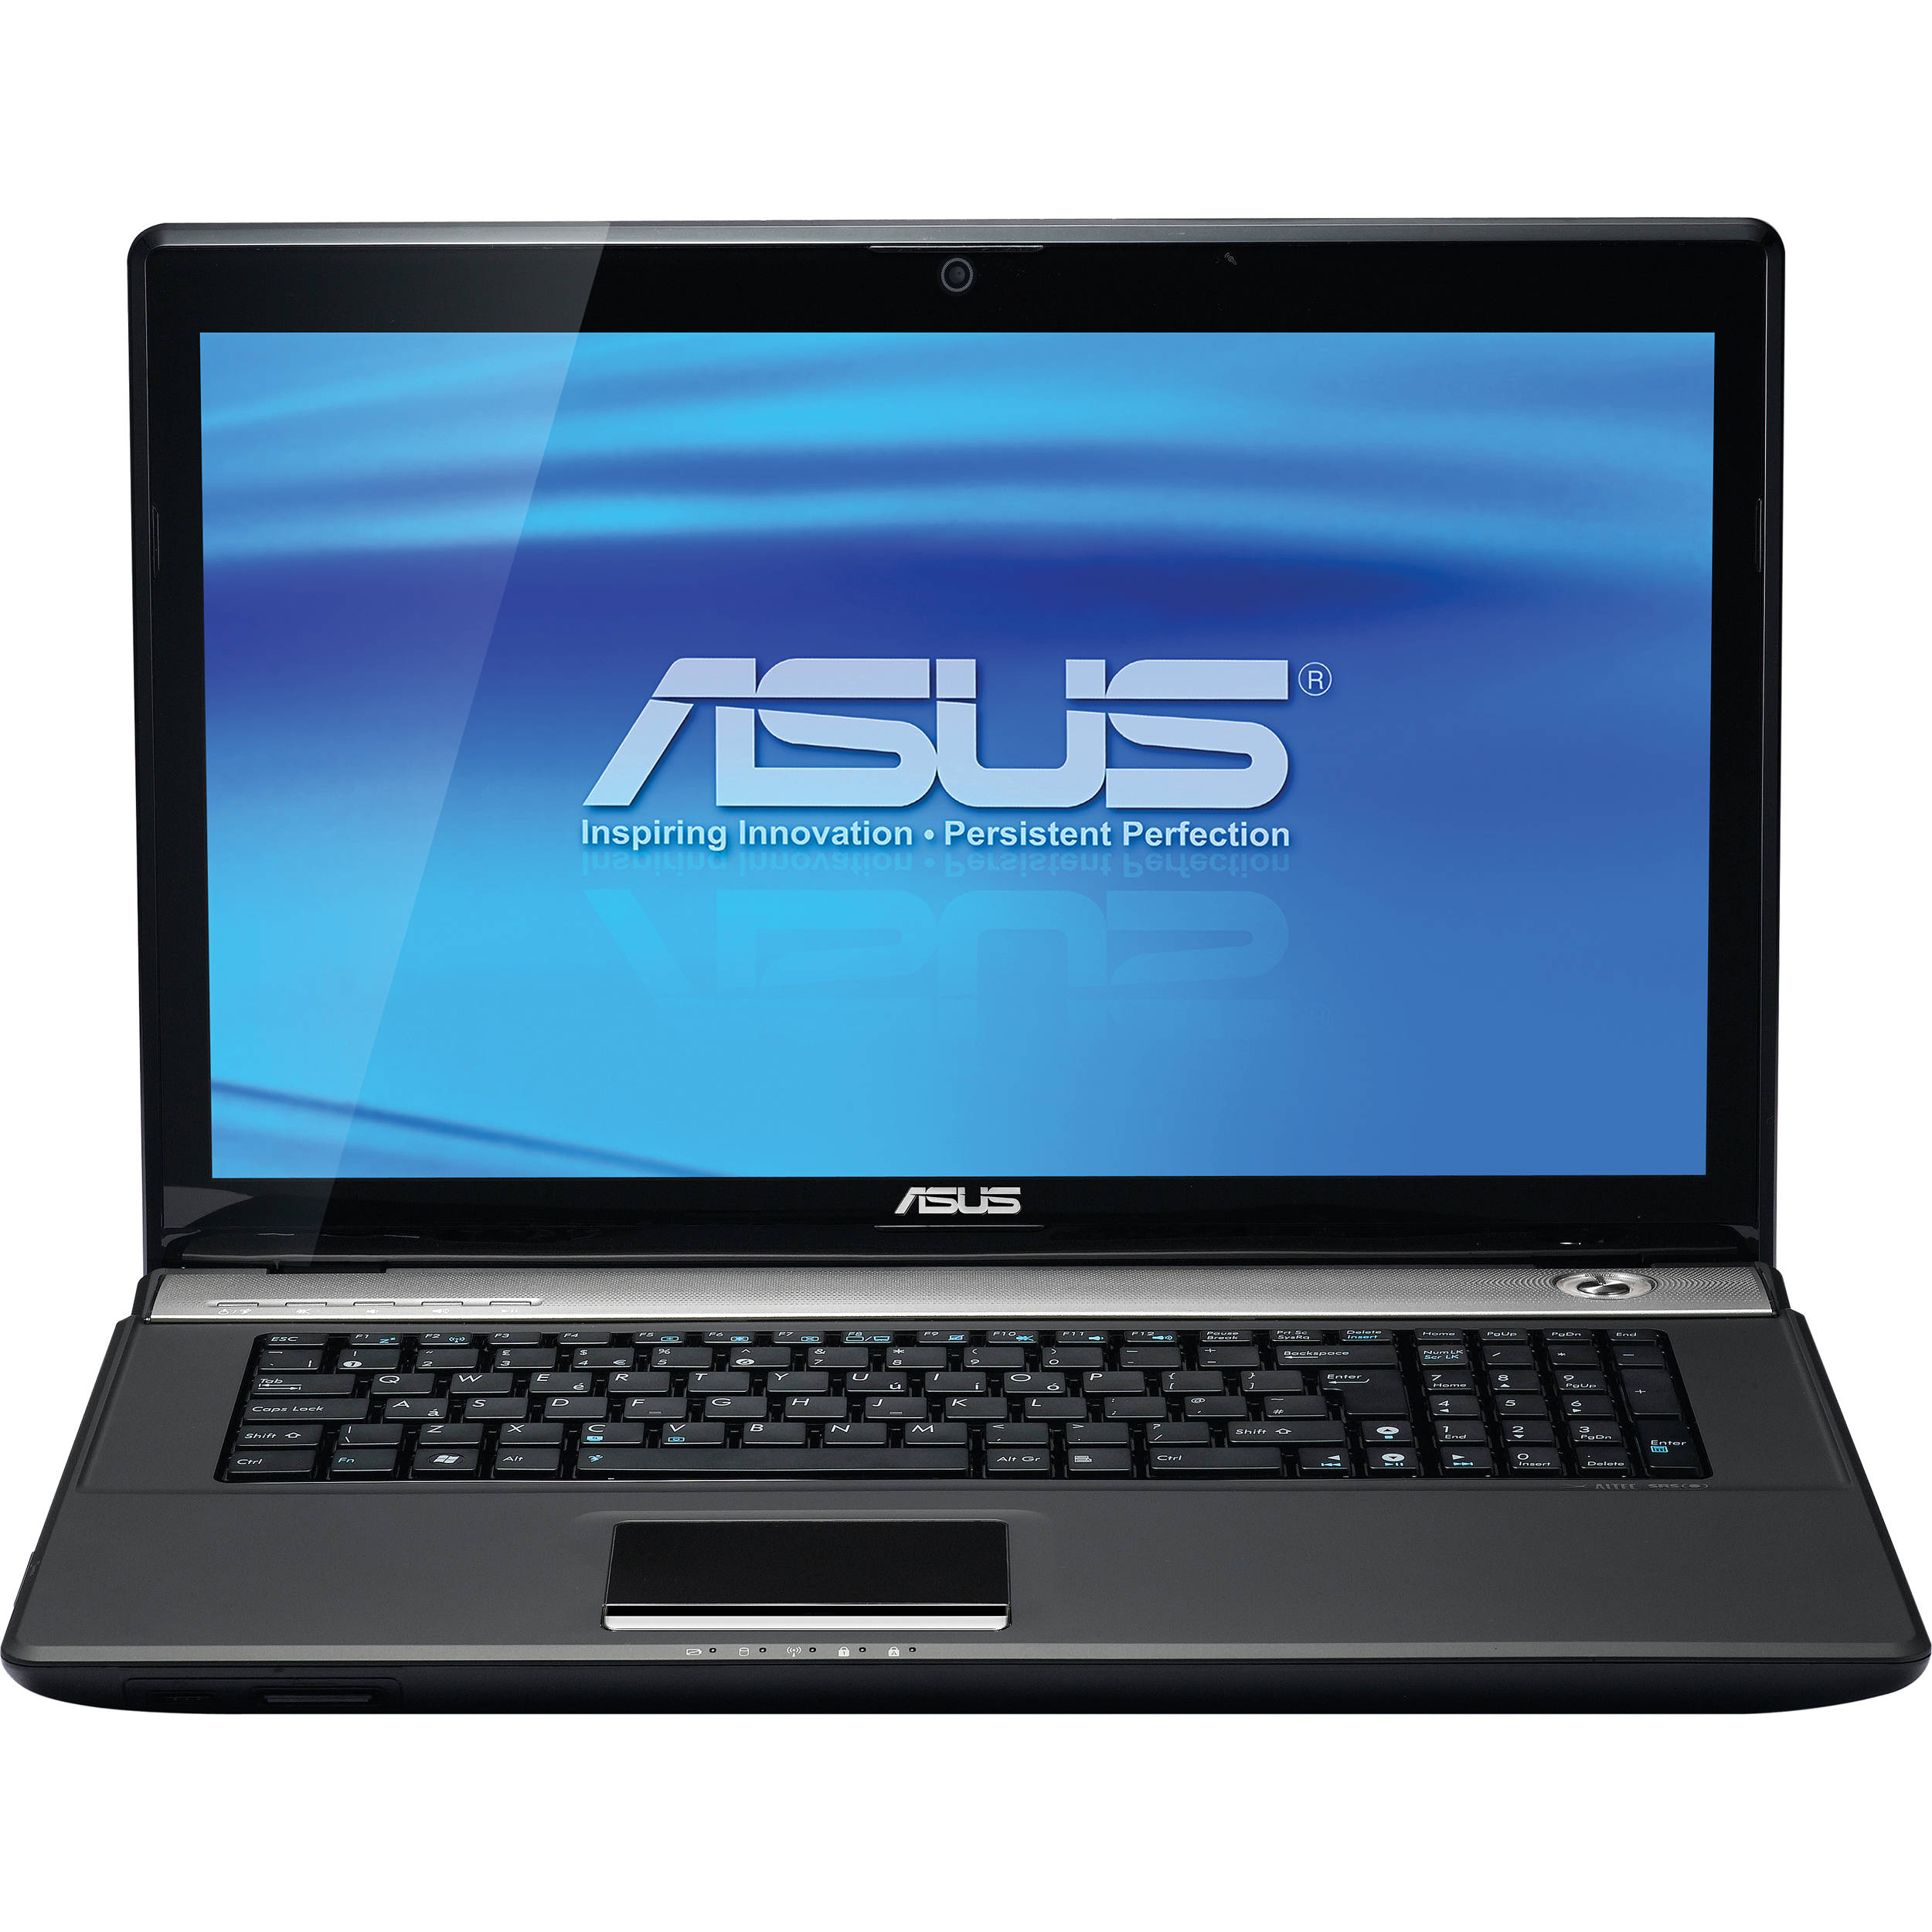 Asus N71Jq Notebook USB 3.0 Driver for PC